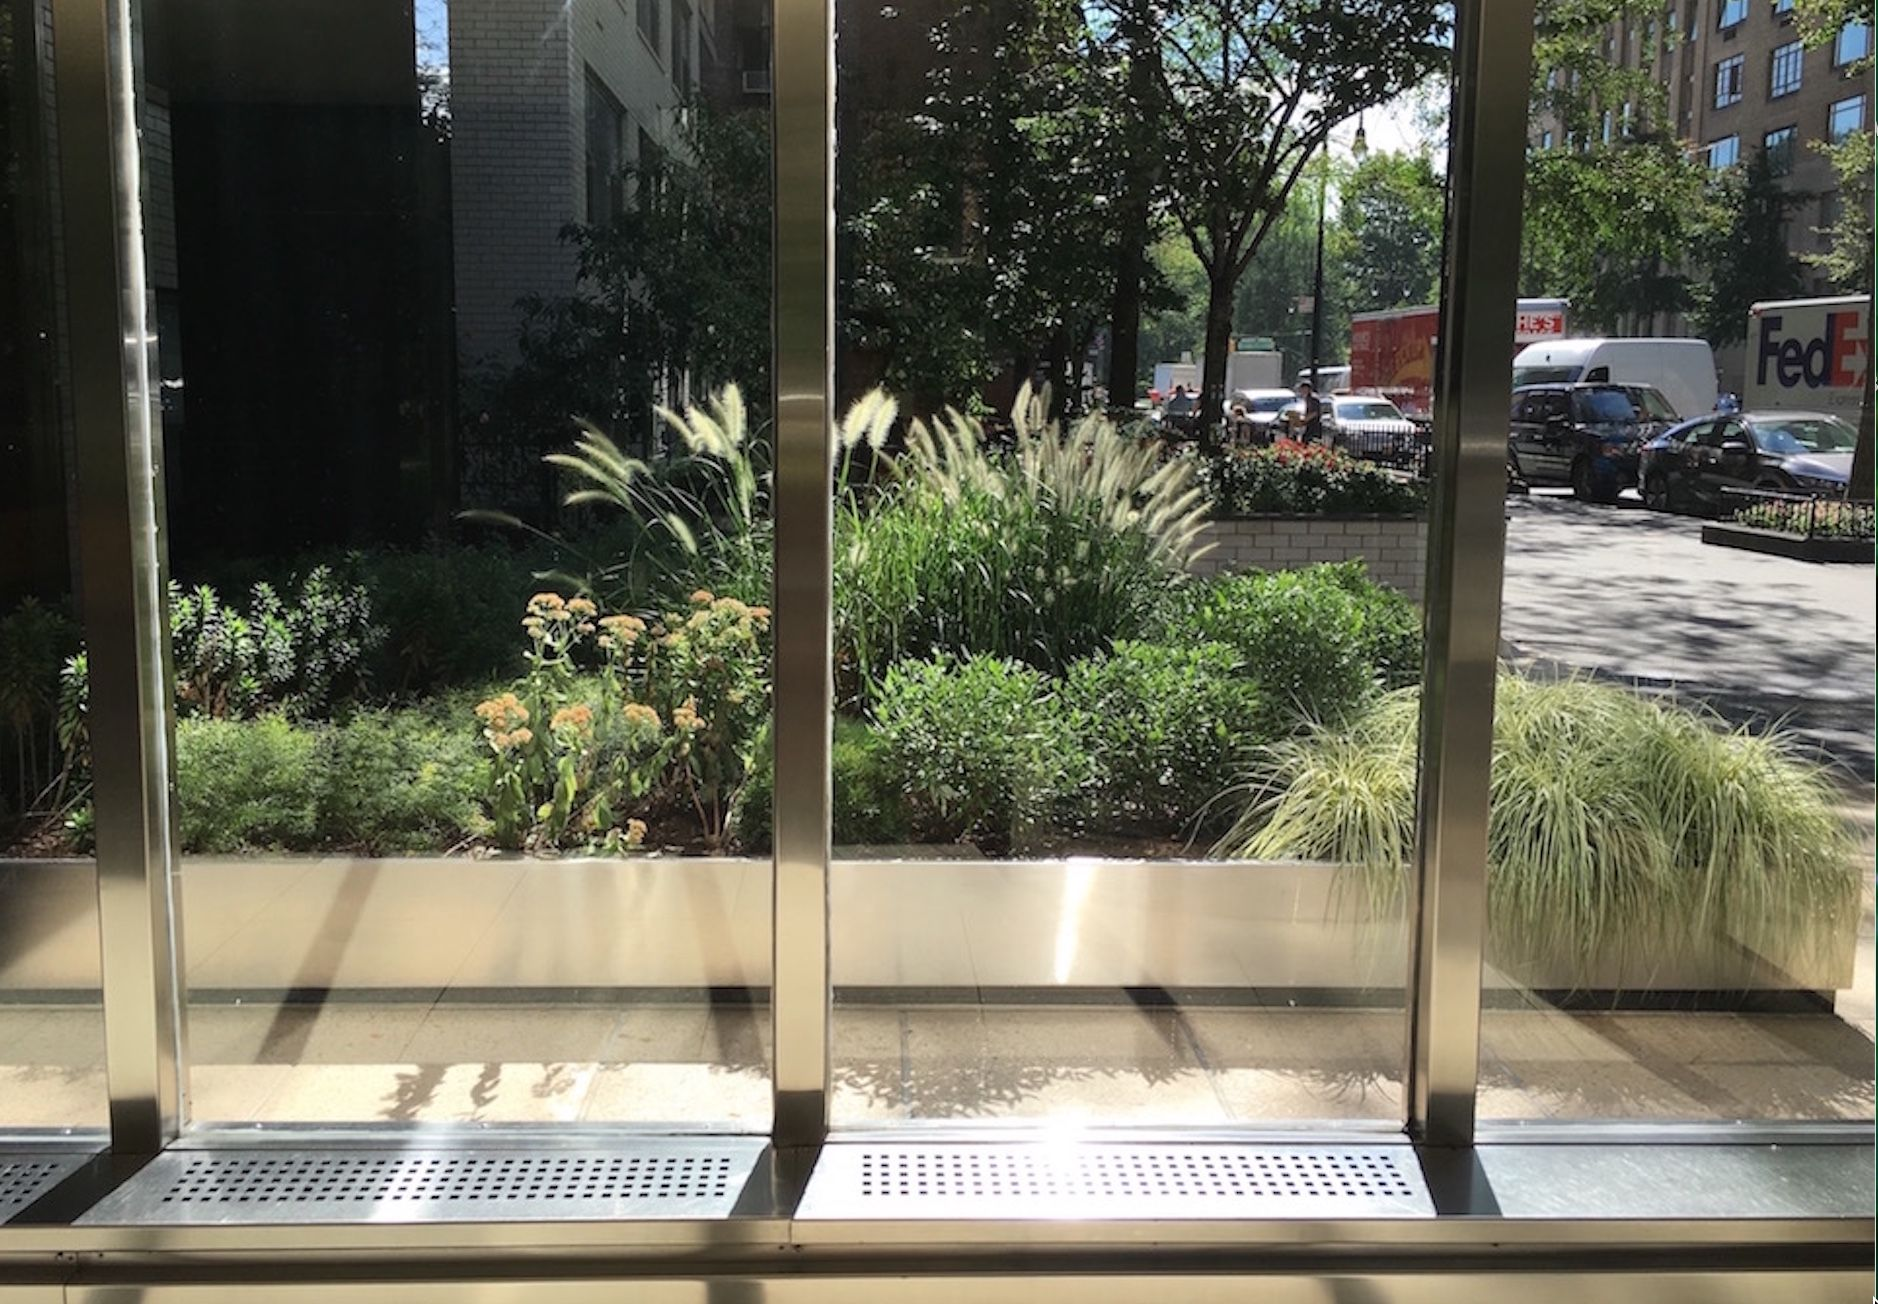 Mayfair Tower Entry Plaza